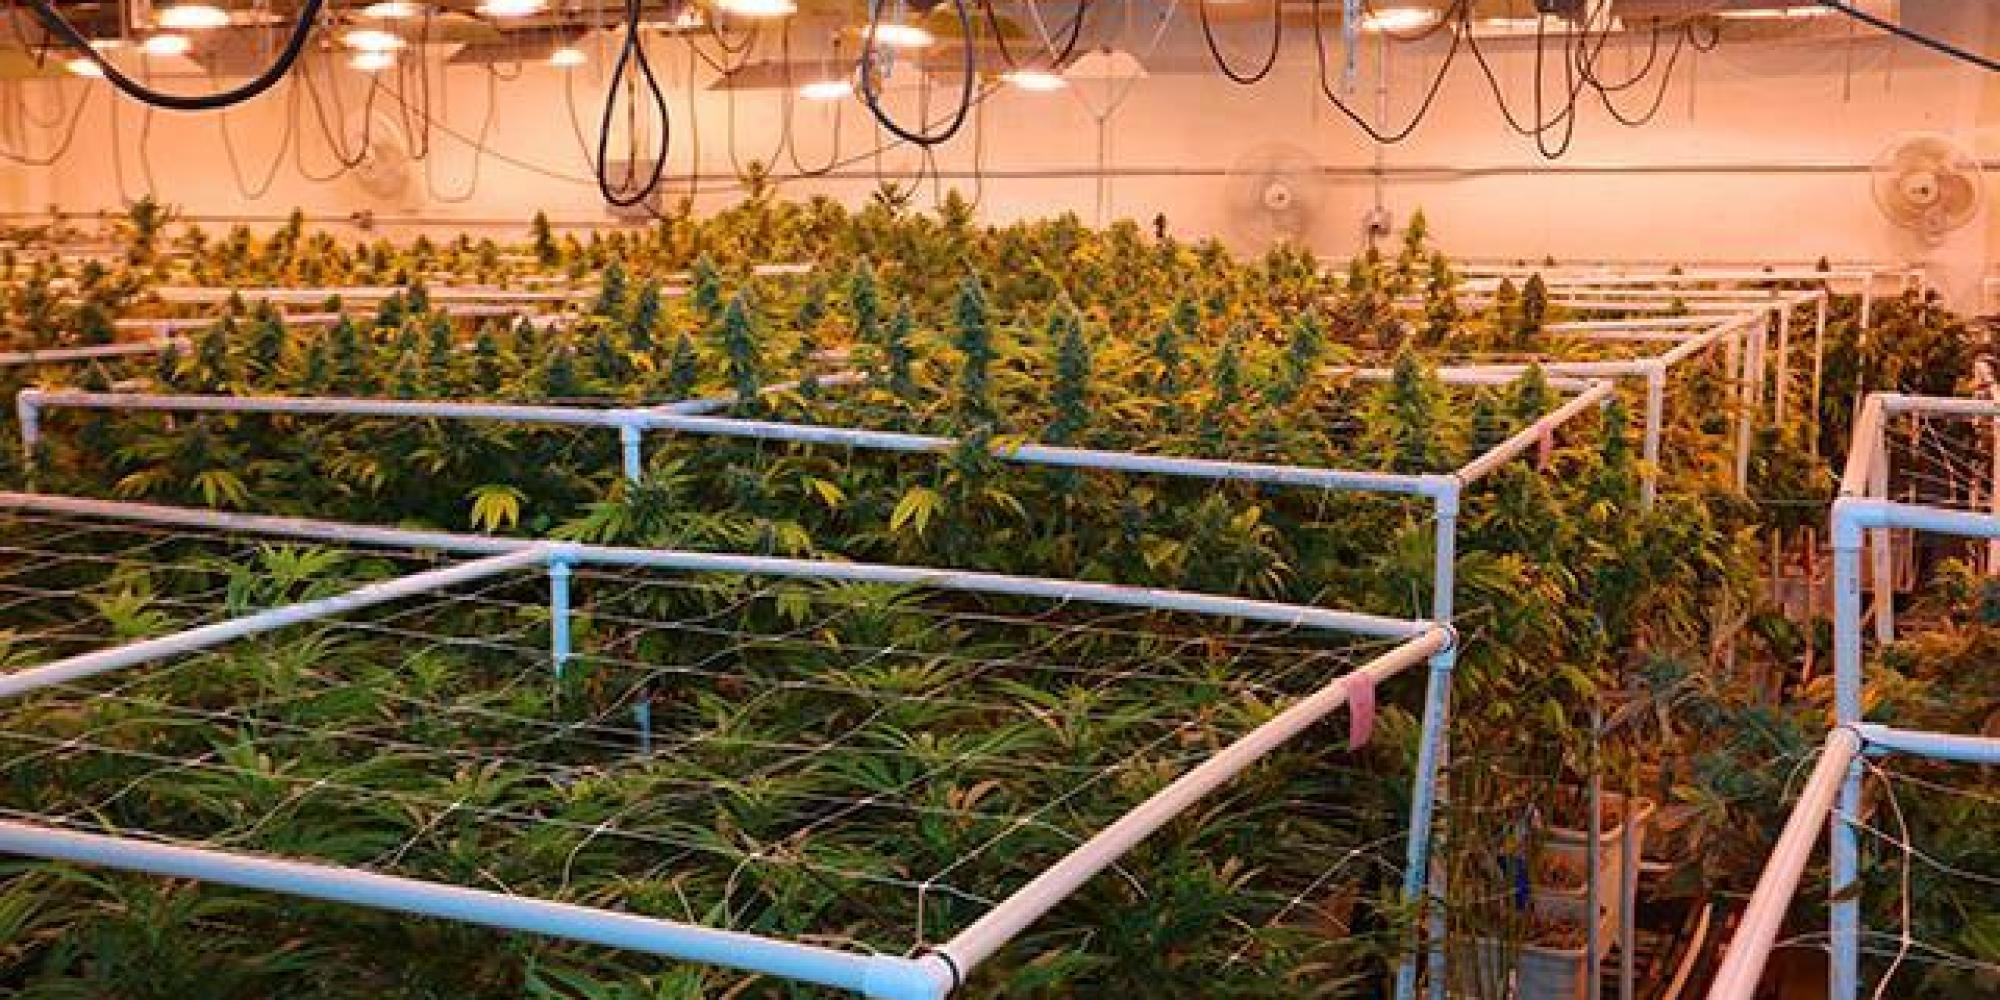 How to open a pot dispensary huffpost - Commercial grow room design plans ...